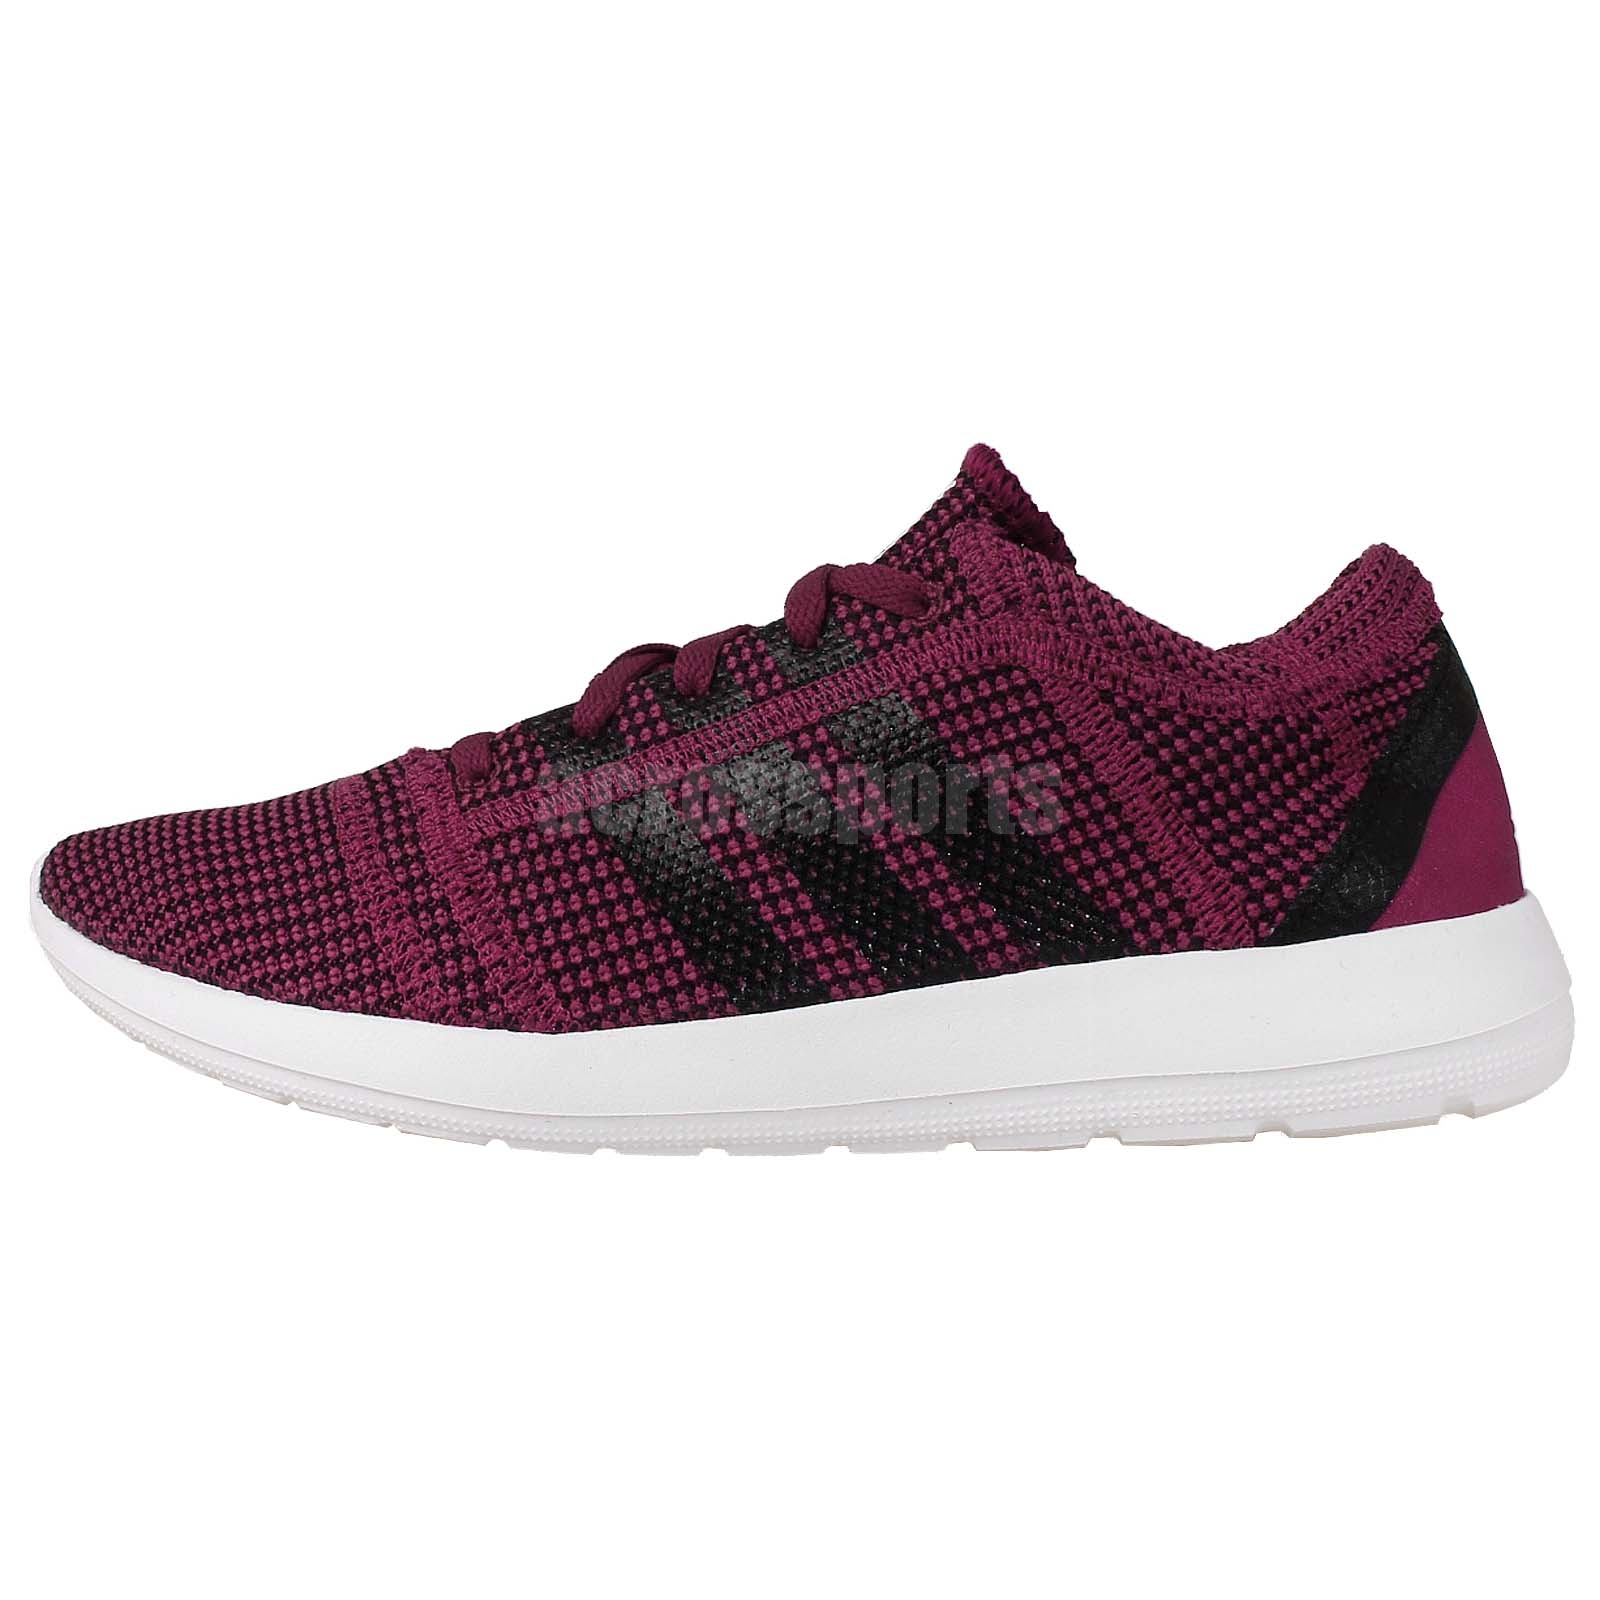 Adidas Running Shoes Element Refine Tricot Shoes